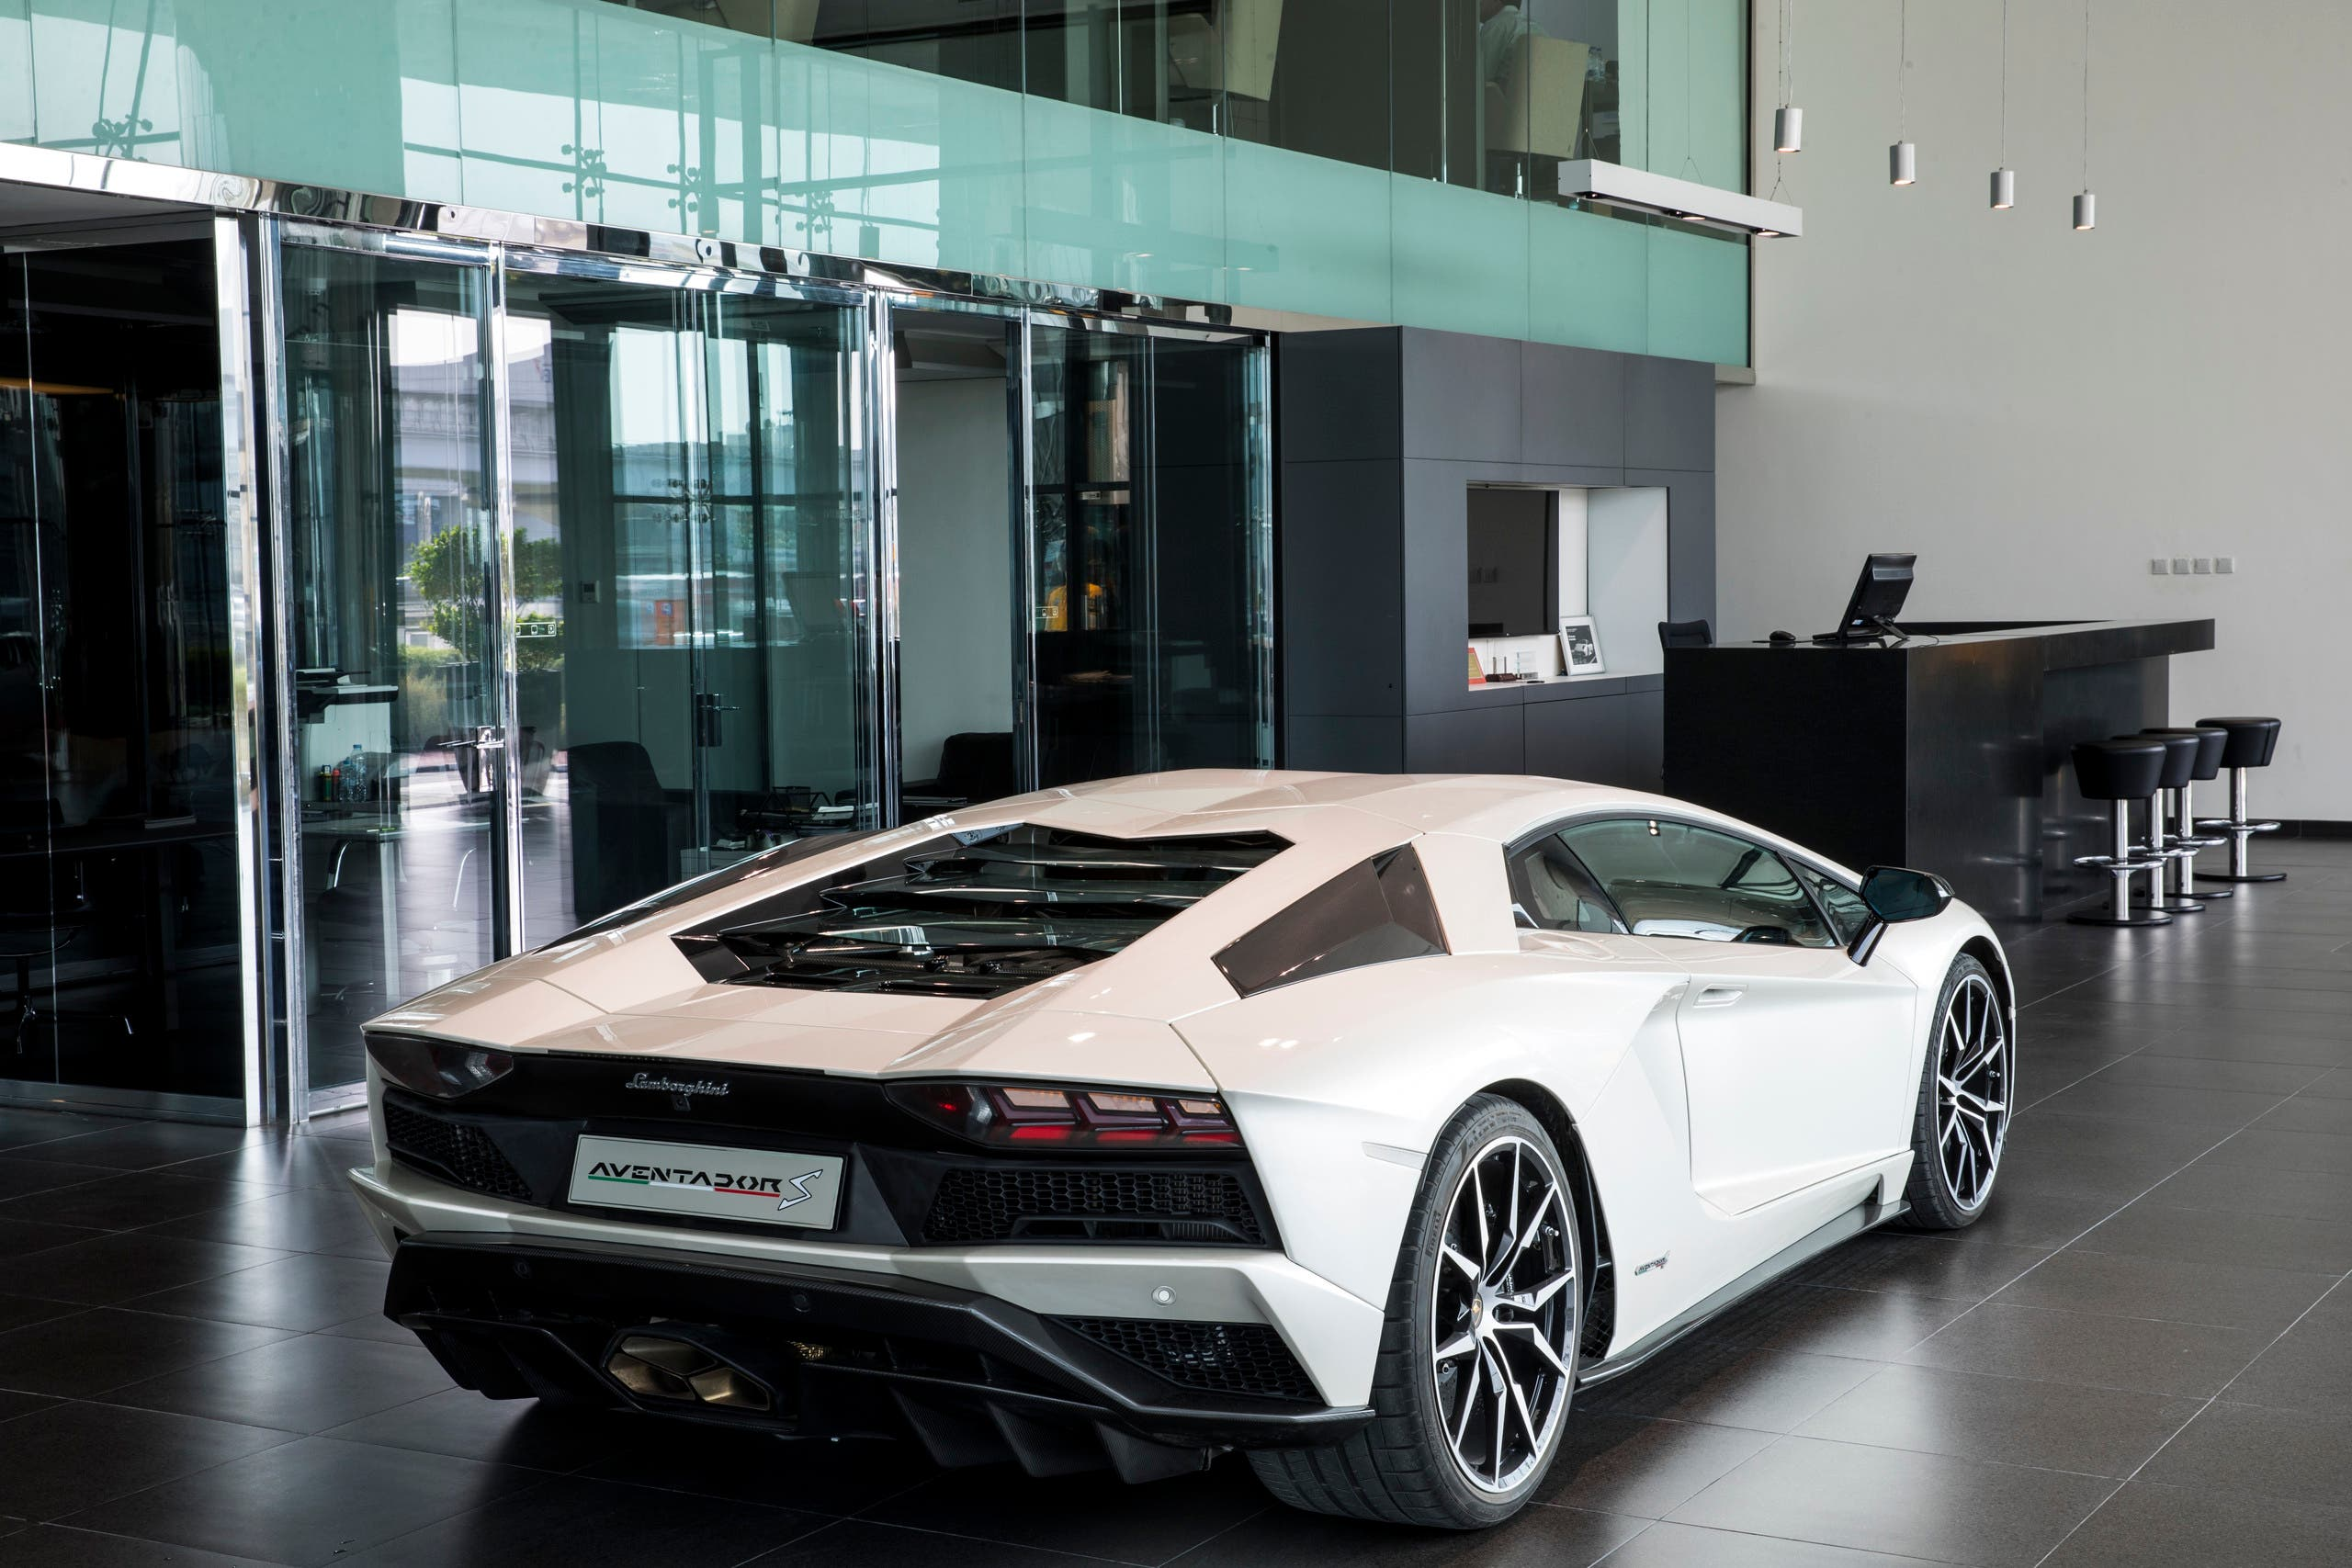 According to the description by the architect the lamborghini showroom and offices building reflects and emphasizes the spirit of this exclusive